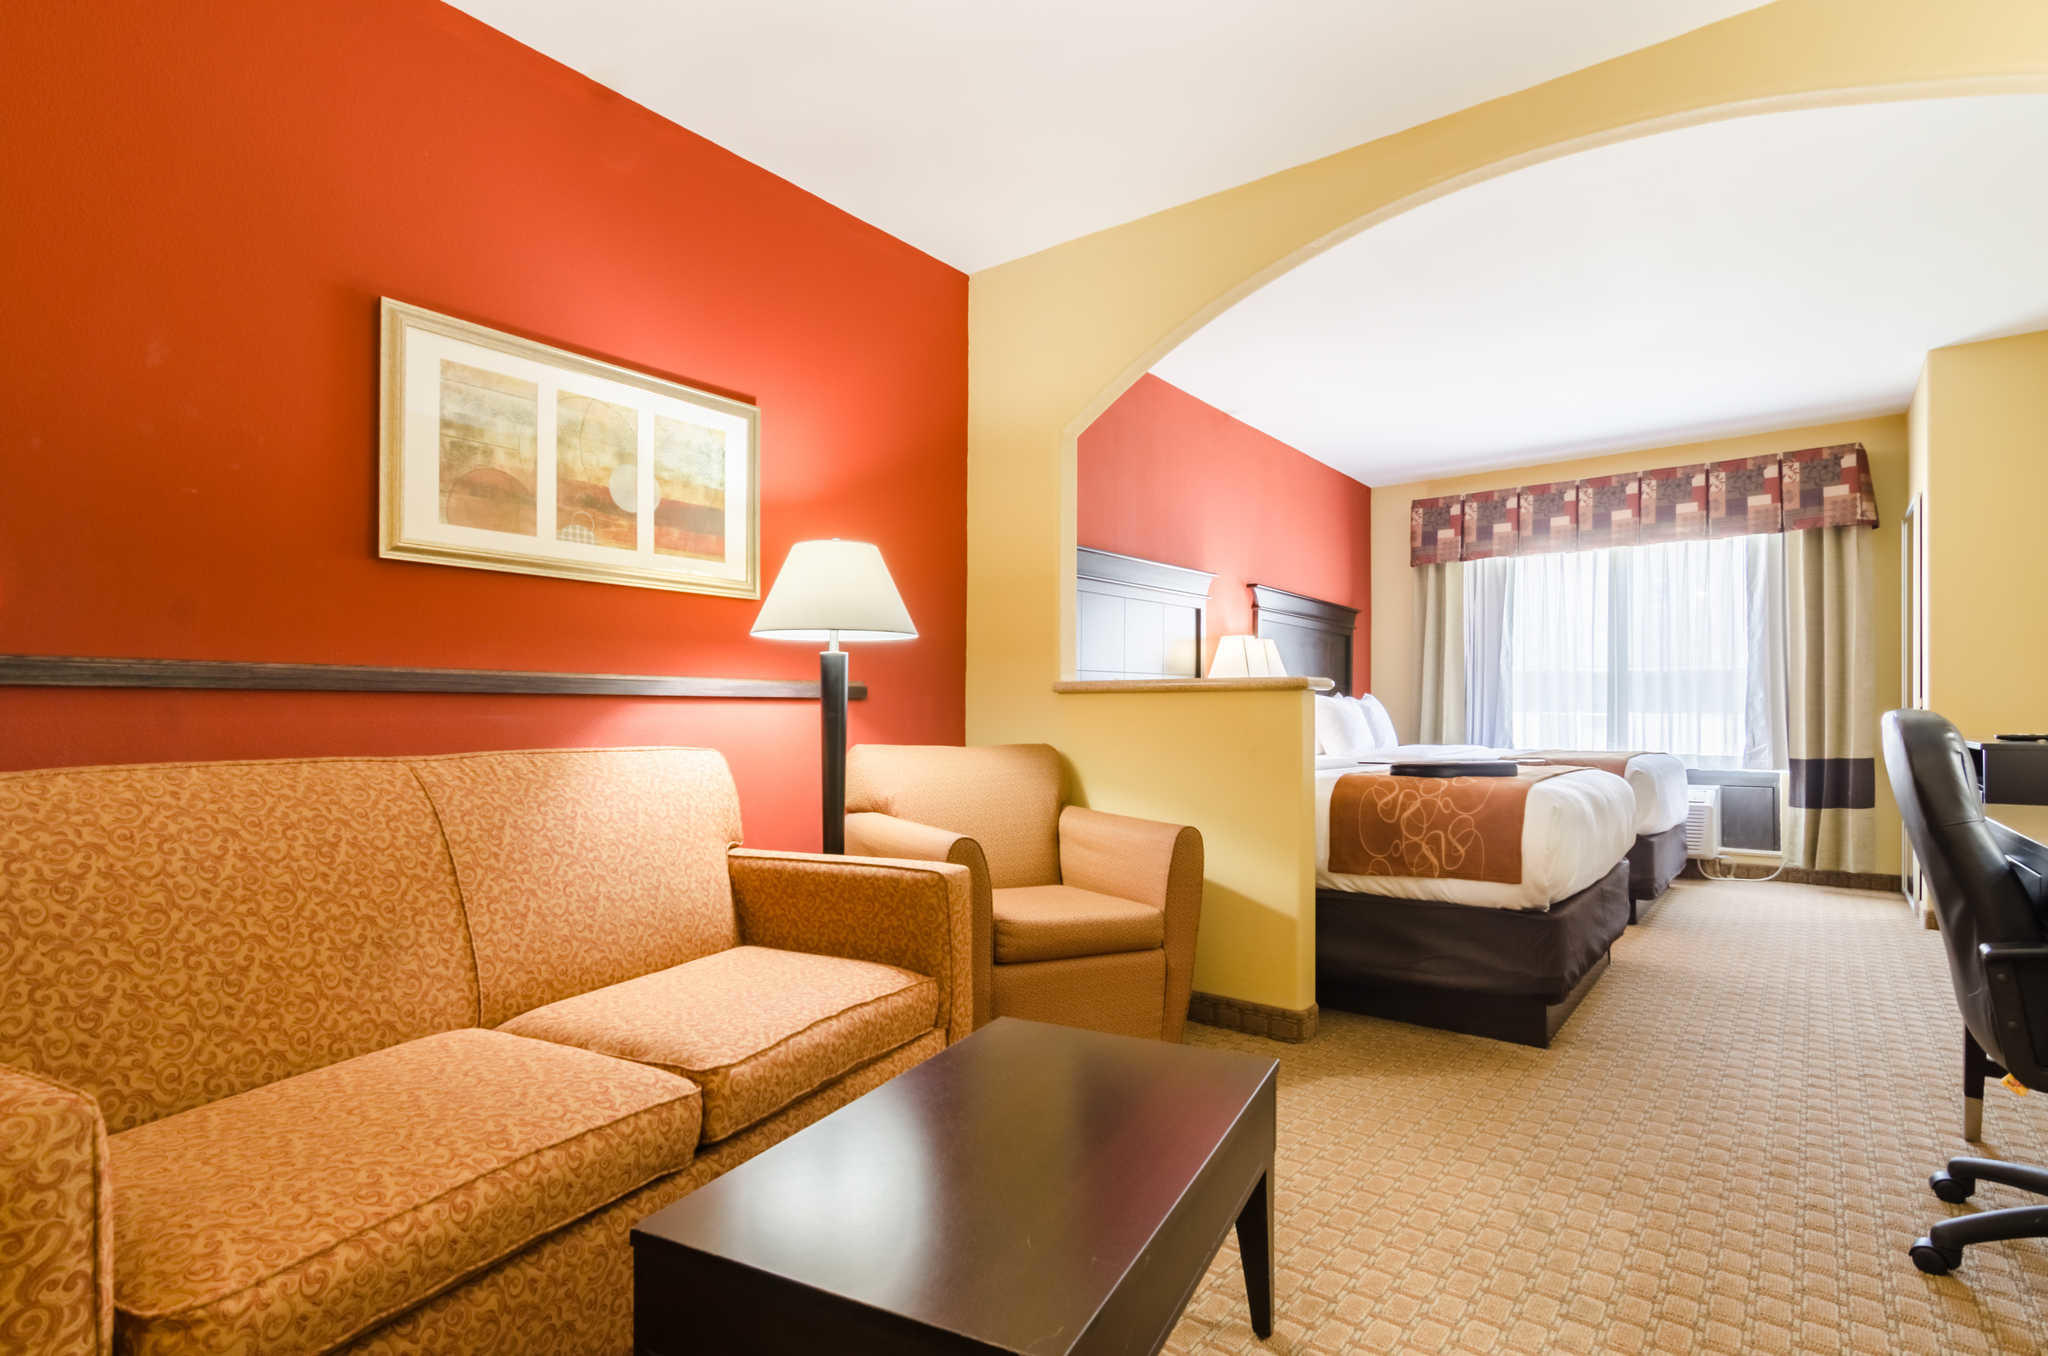 Comfort Suites Coupons Near Me In Salina 8coupons